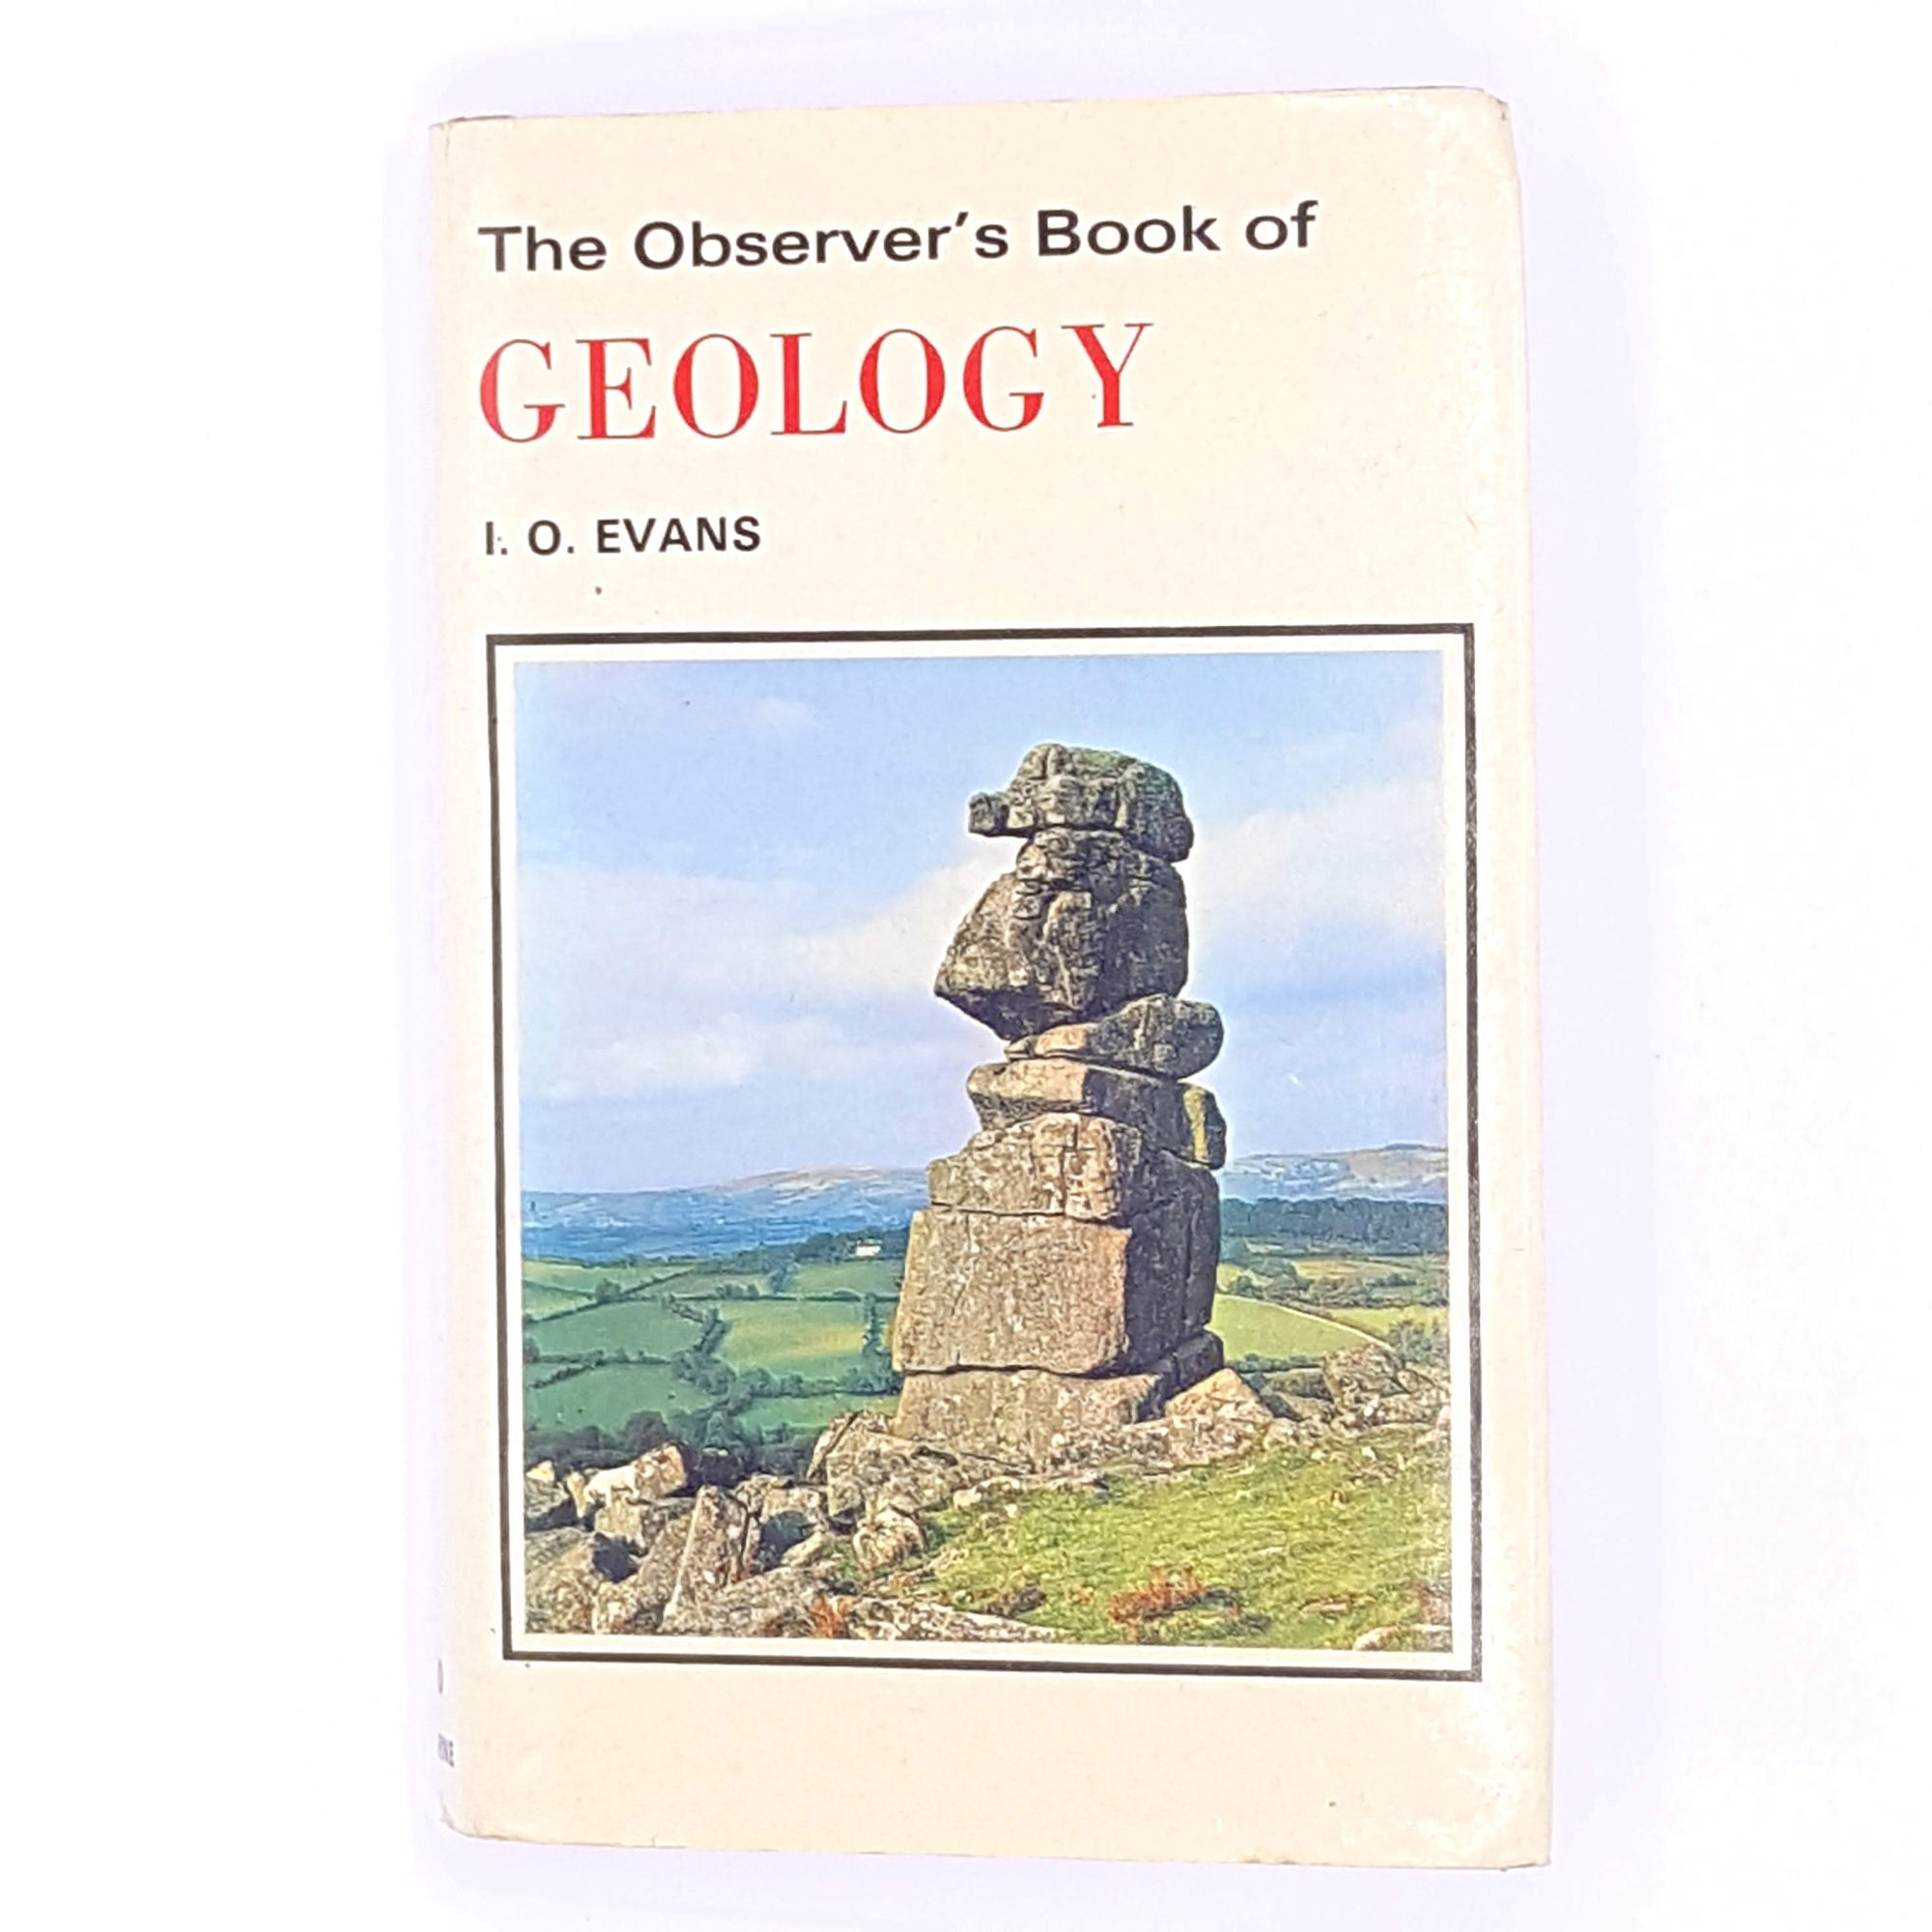 antique-country-house-library-pocket-patterned-geology-Observer-decorative-classic-Geography-Earth-vintage-books-I-O-Evans-series-thrift-old-guide-